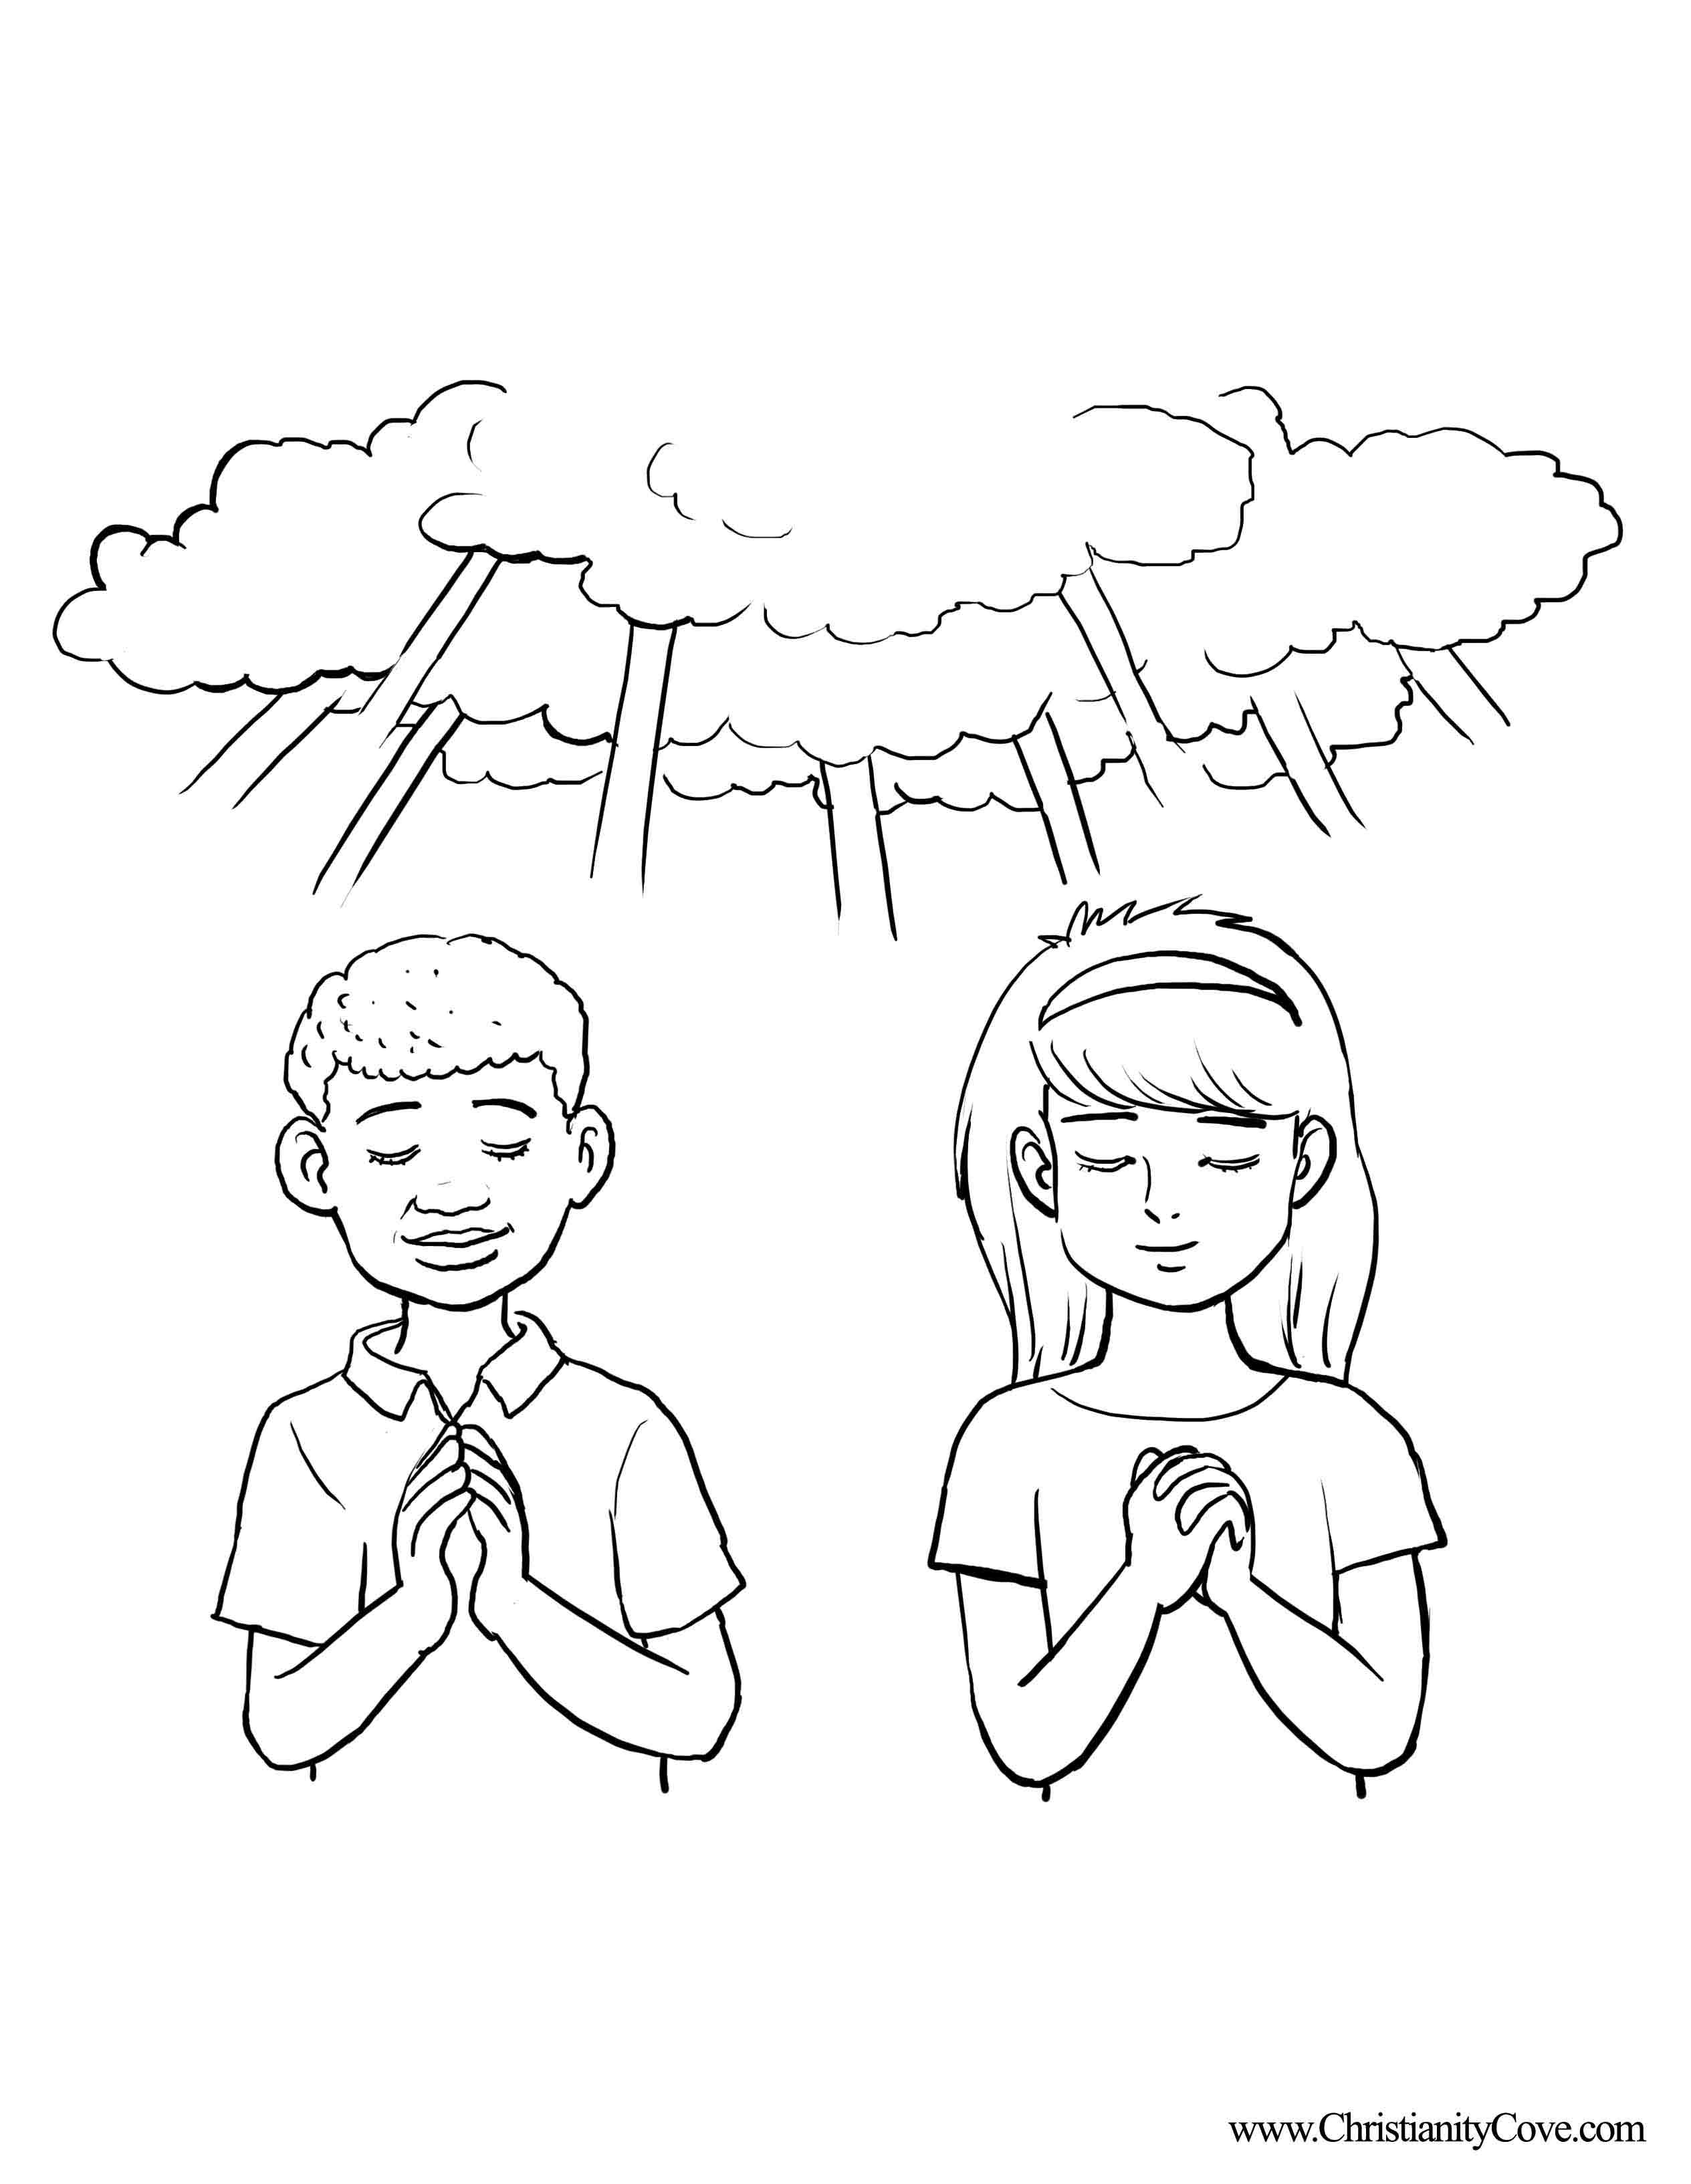 Free The Lord S Prayer Coloring Pages For Children